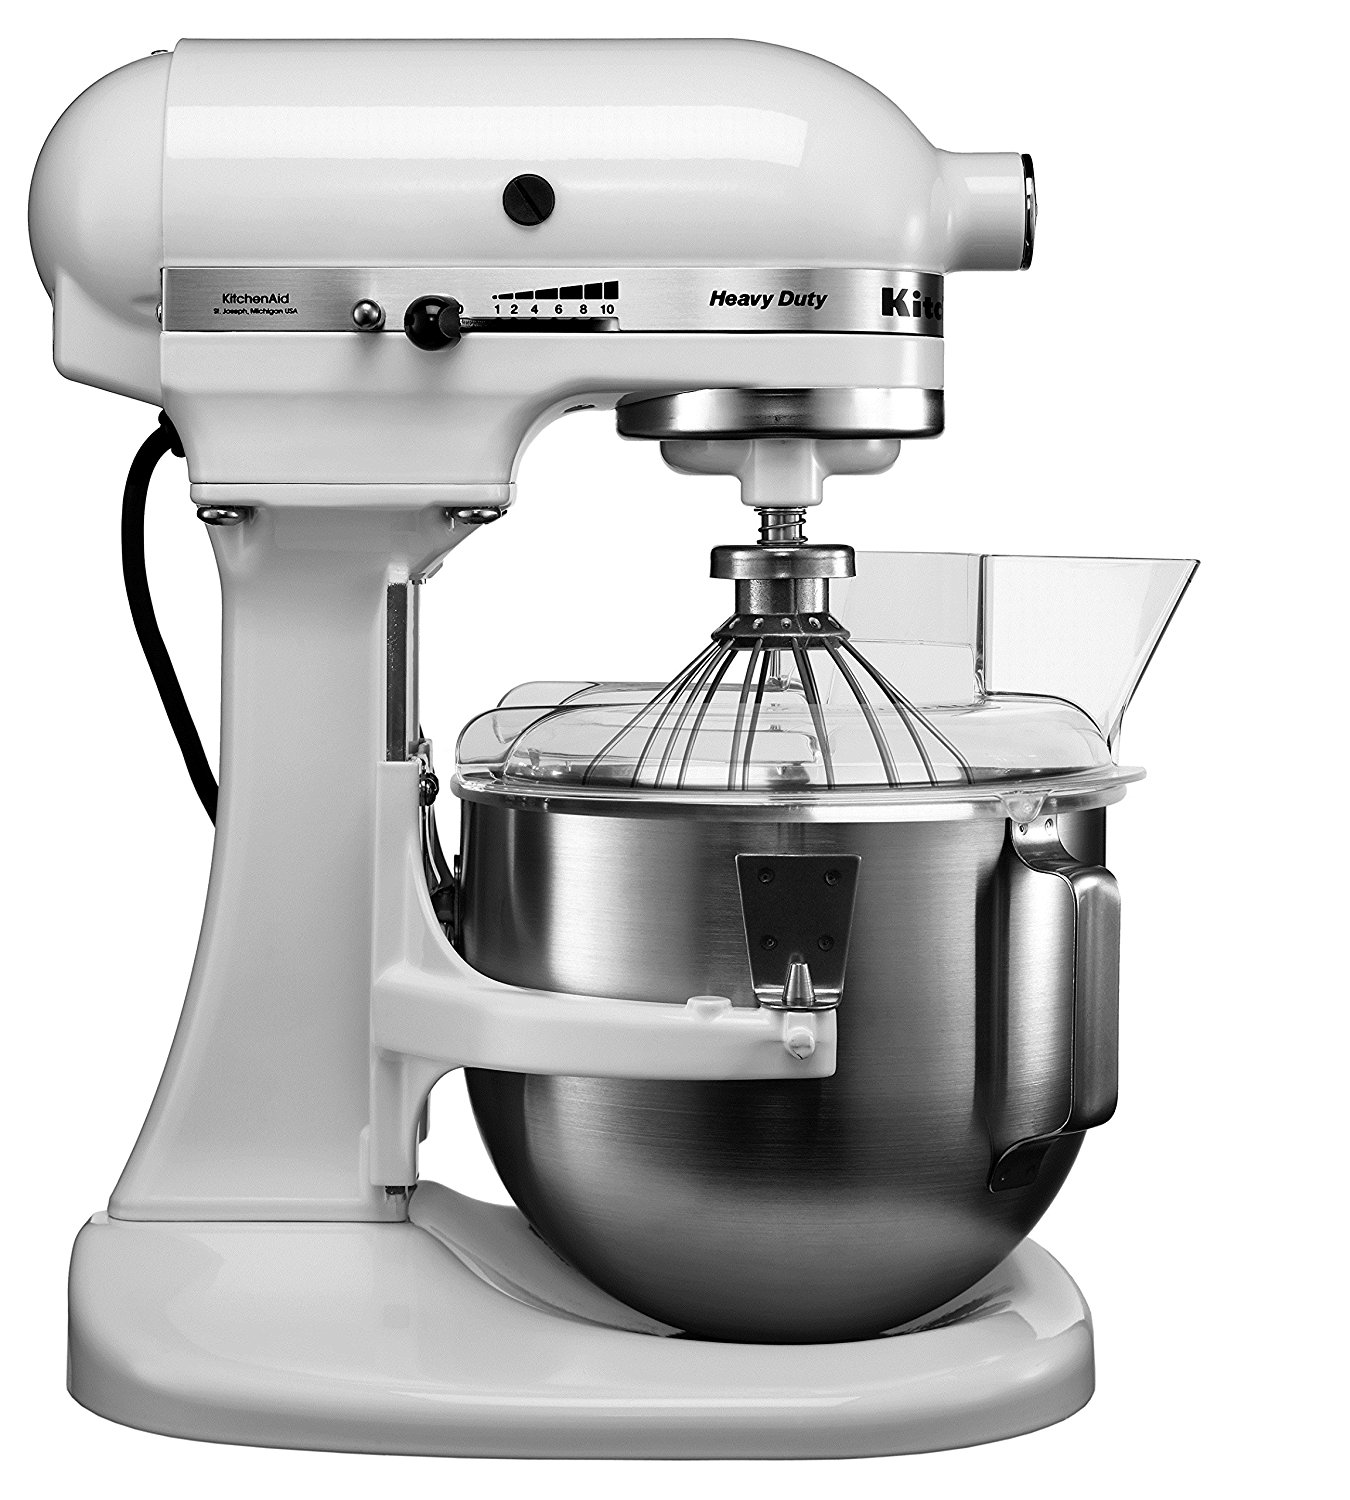 Top 10 Best Stand Mixers In India 2019 Reviews Amp Buyer